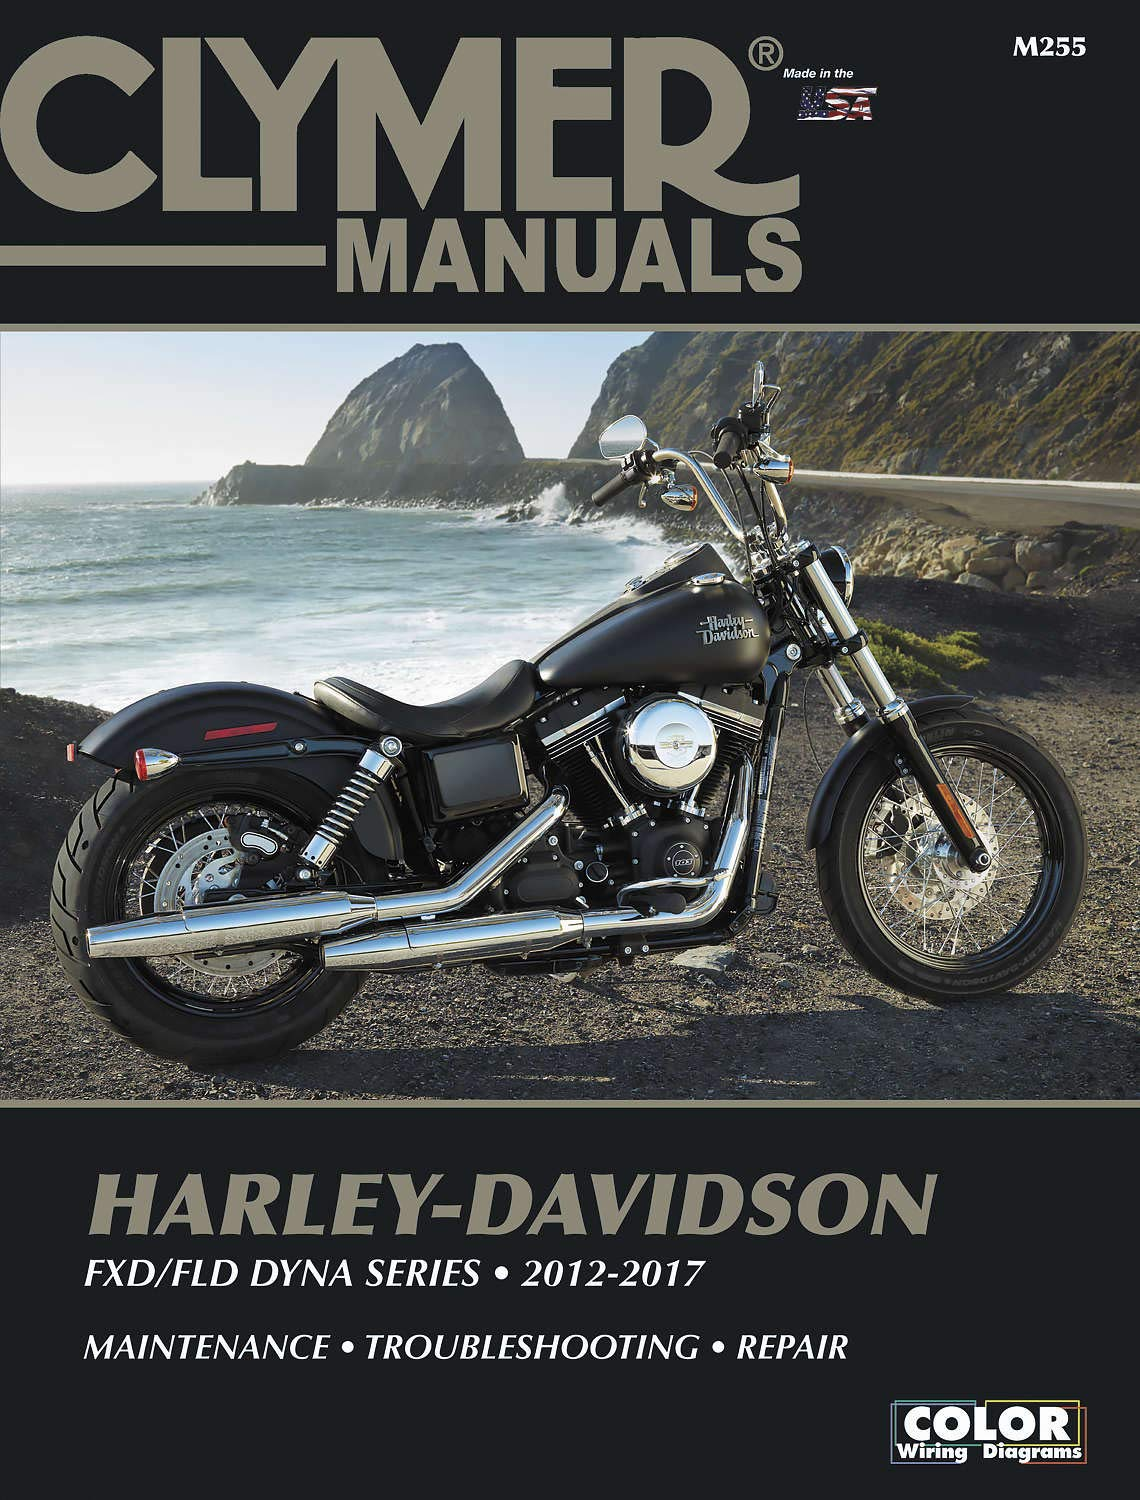 Clymer Harley Davidson DYNA Series '12-'15 Manual on